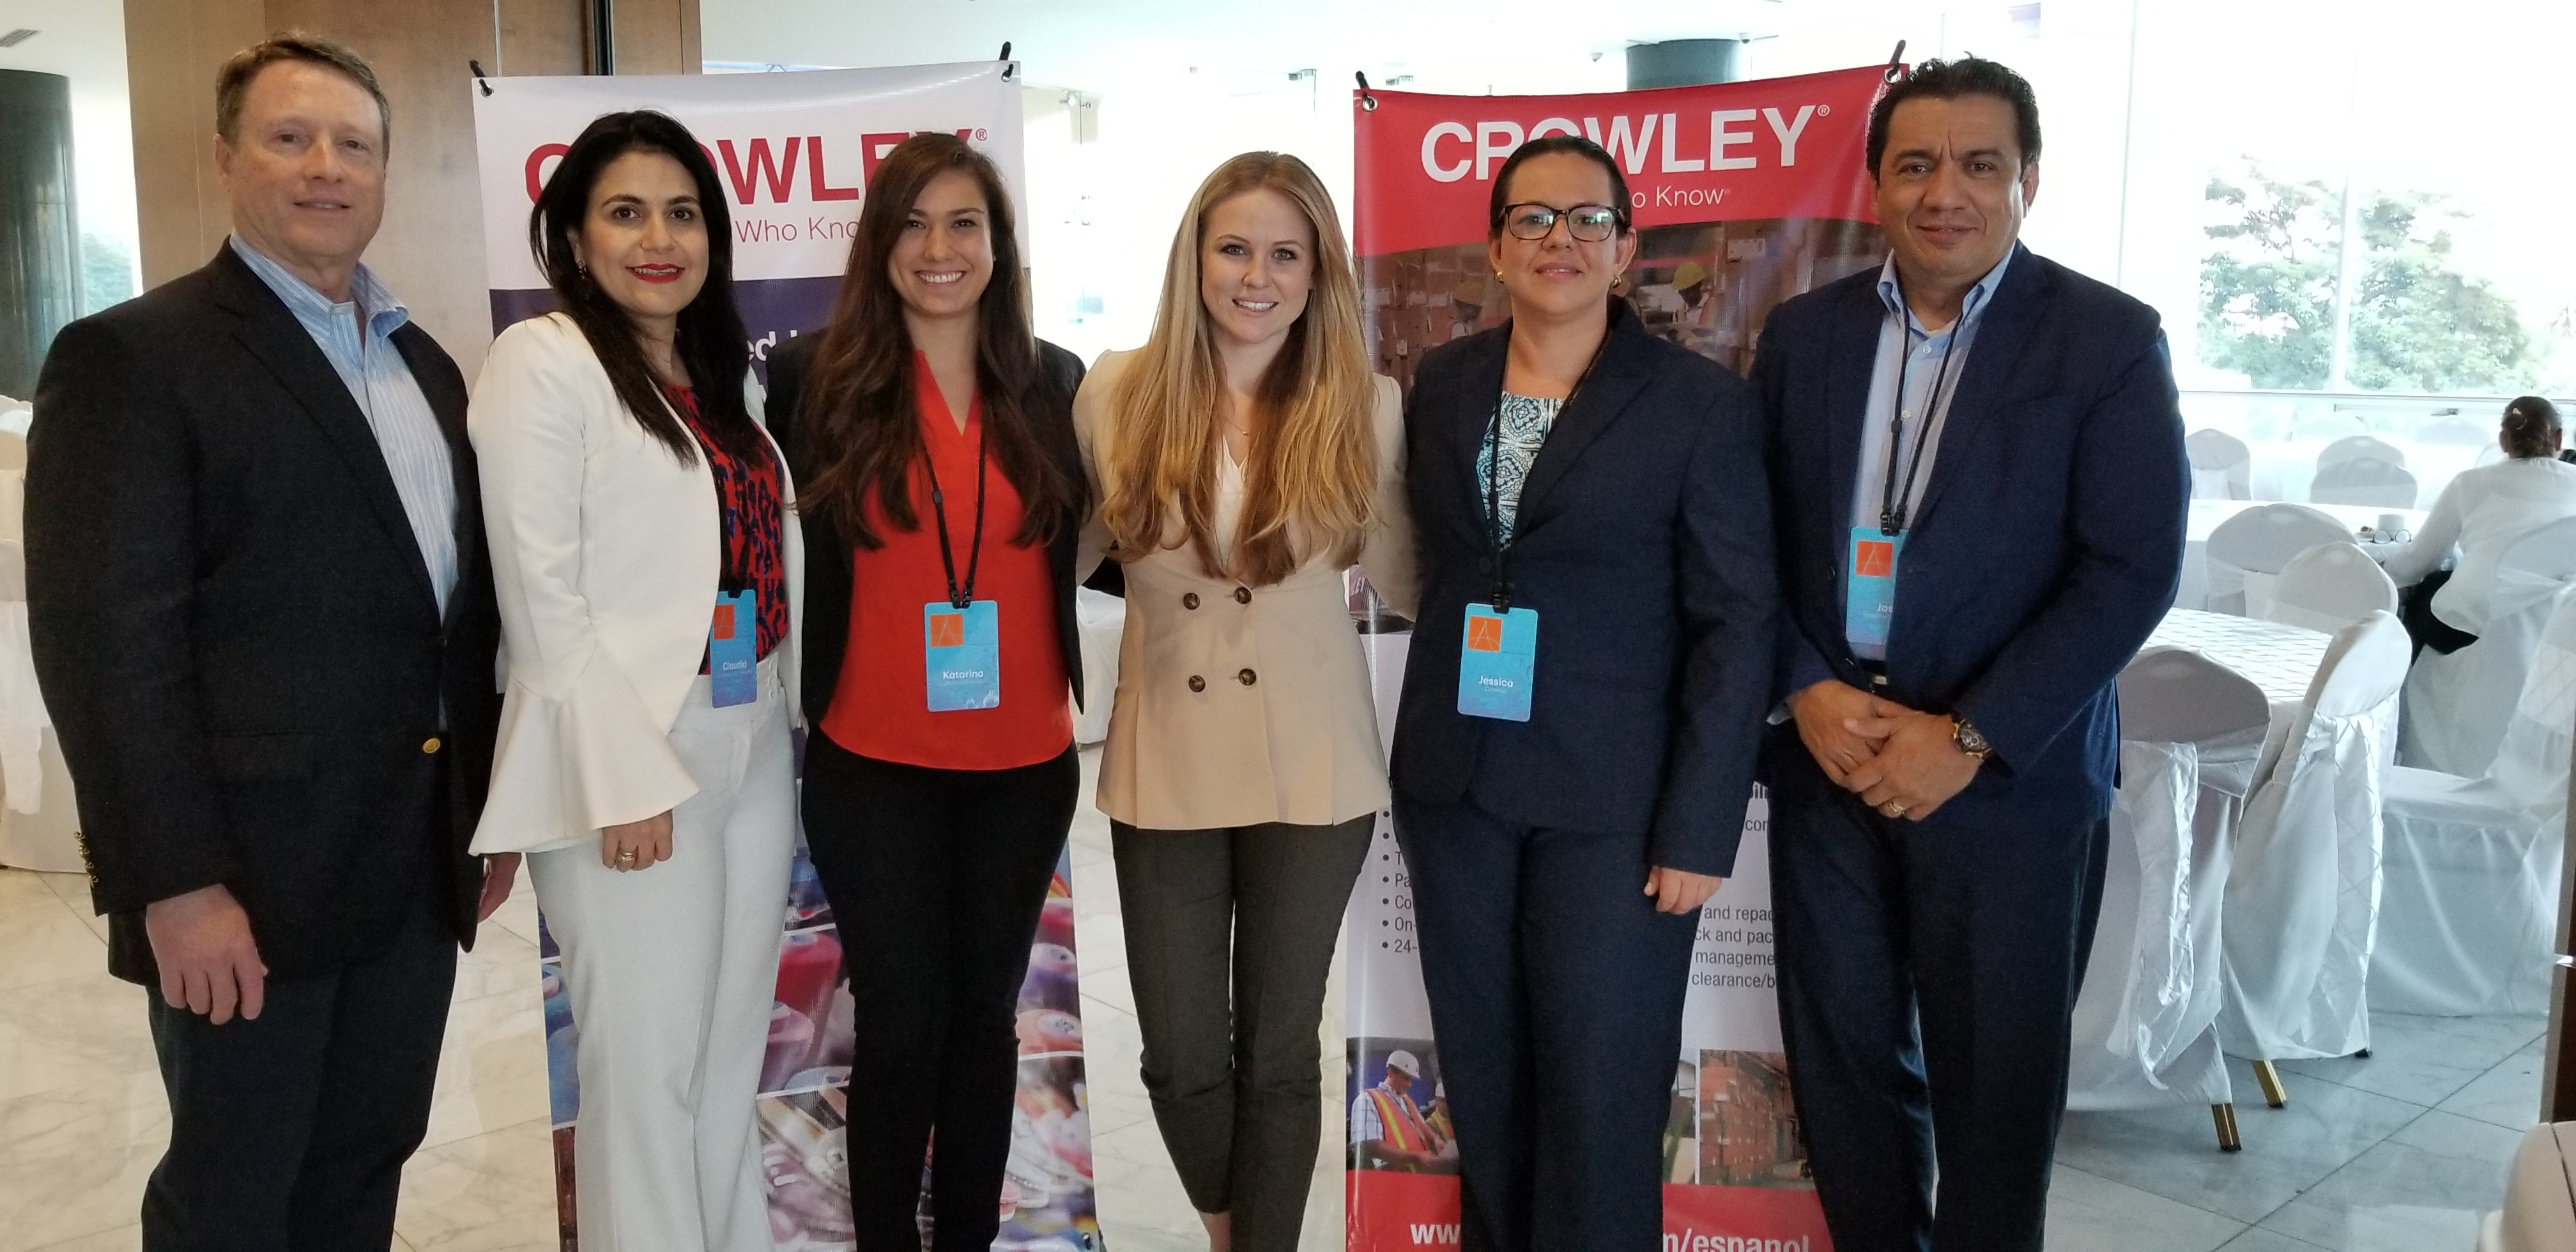 Crowley offers end-to-end, fully integrated supply chain services and management